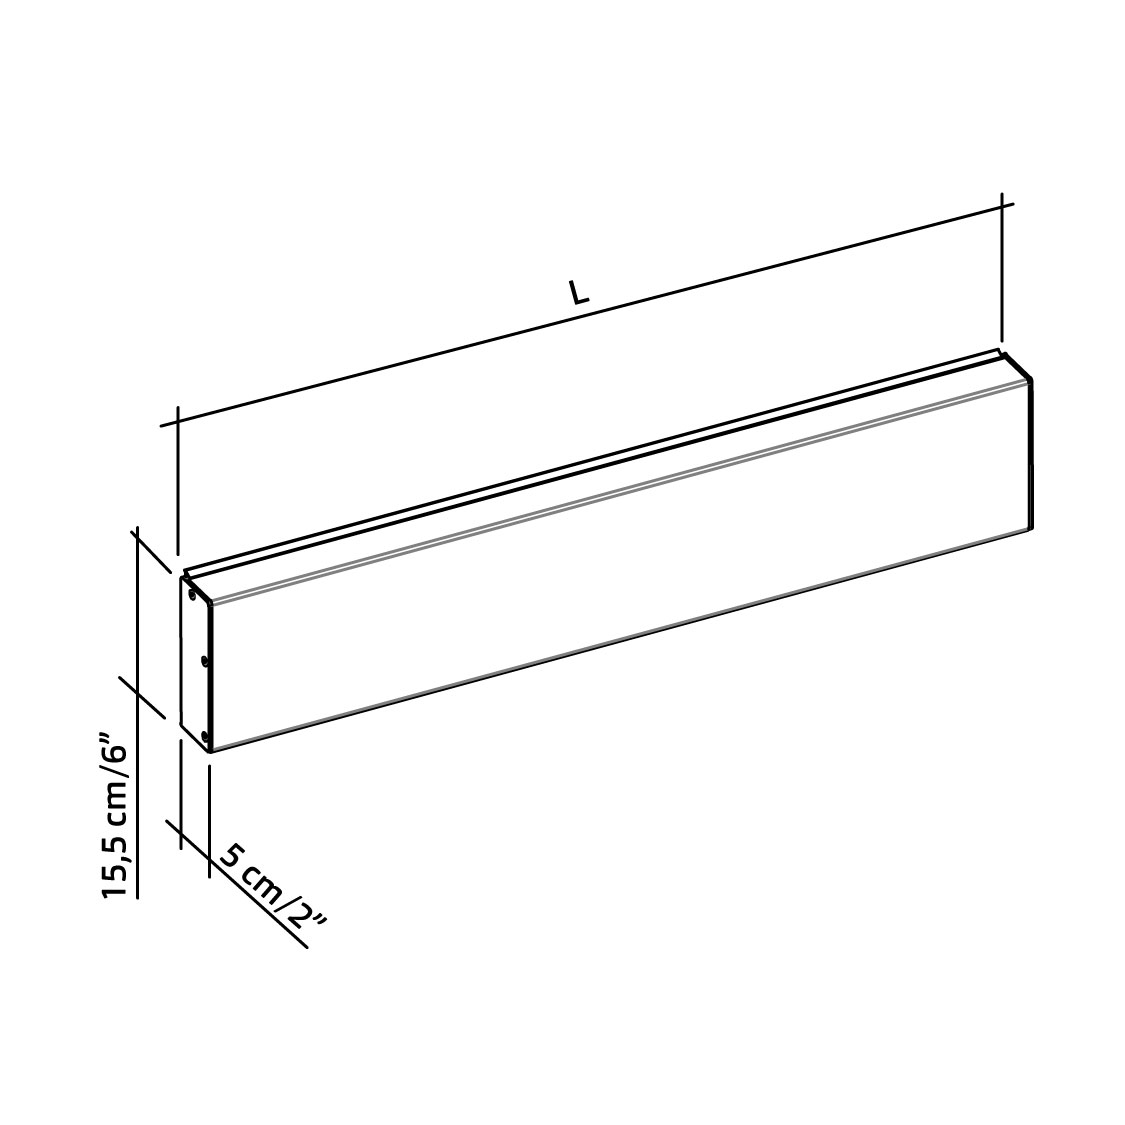 11-103-xx-wall-mounted-horizontal-track-with-cover-for-coating-and-side-caps-diagram